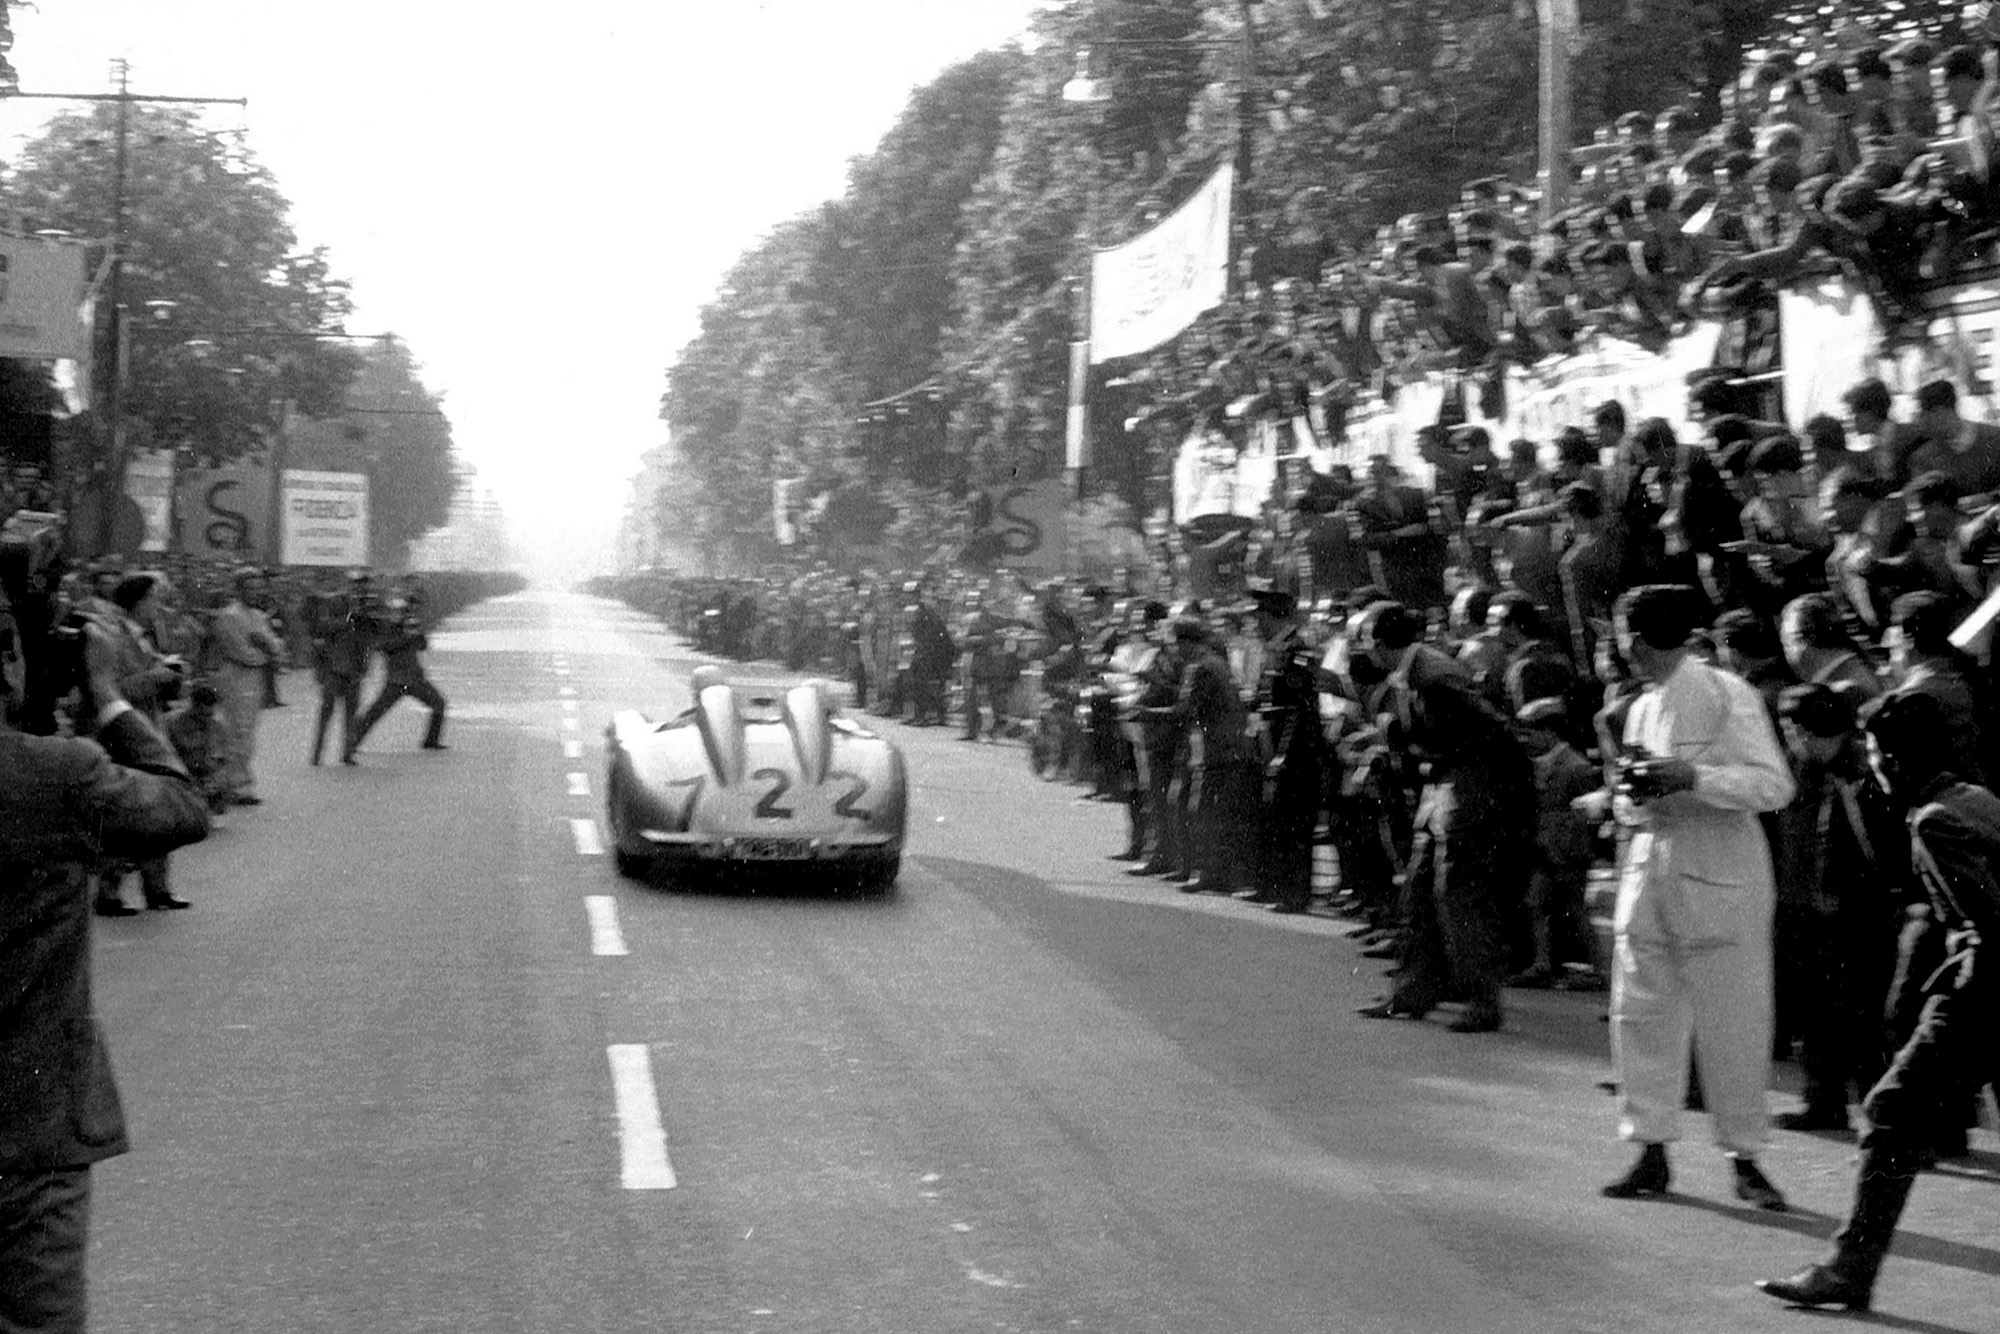 The Moss-Jenkinson Mercedes races past spectators at 1955 Mille Miglia Italy